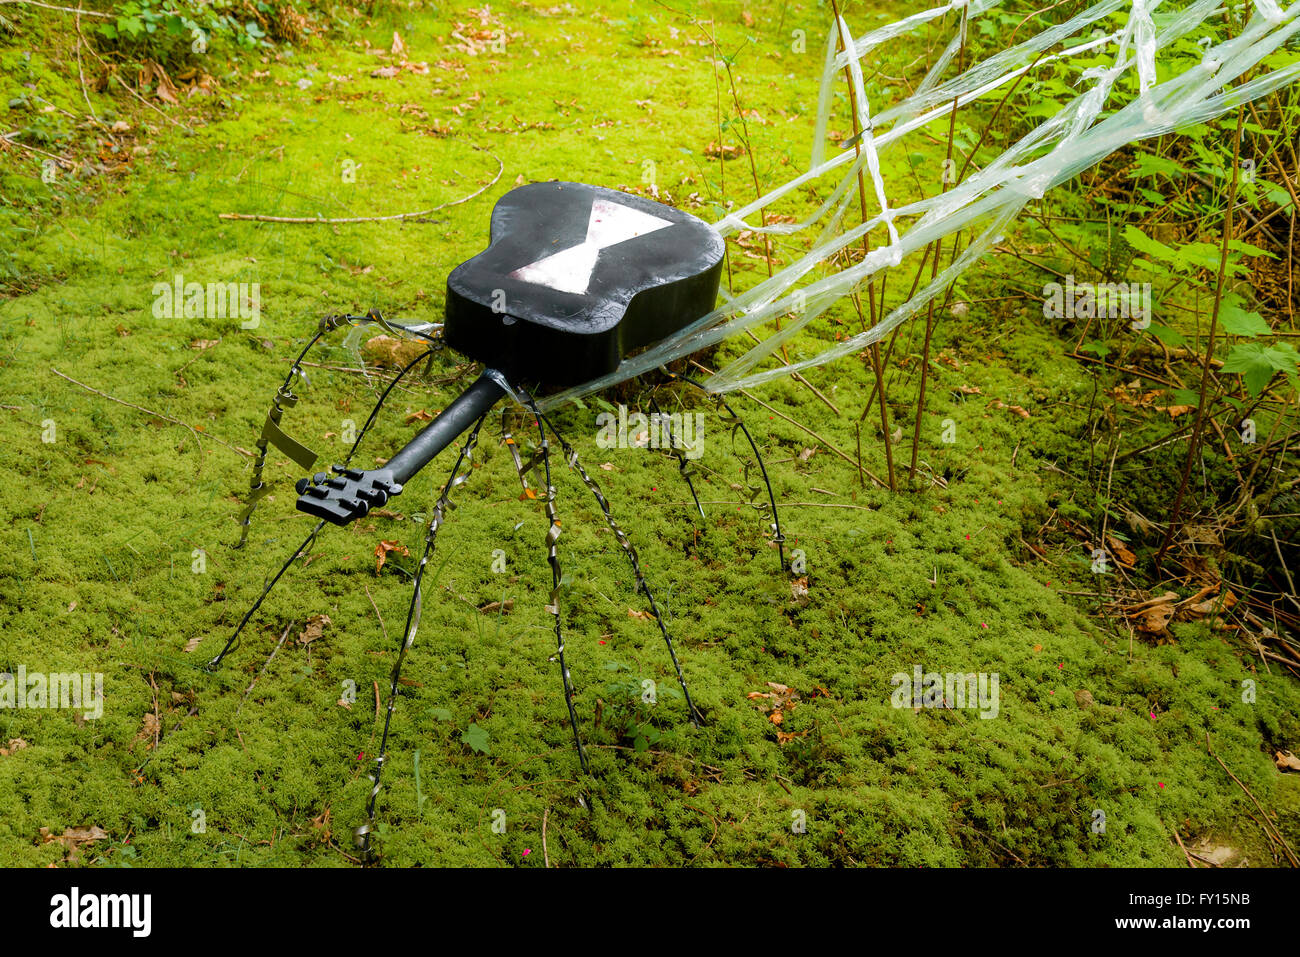 Milner Stock Photos & Milner Stock Images - Page 3 - Alamy